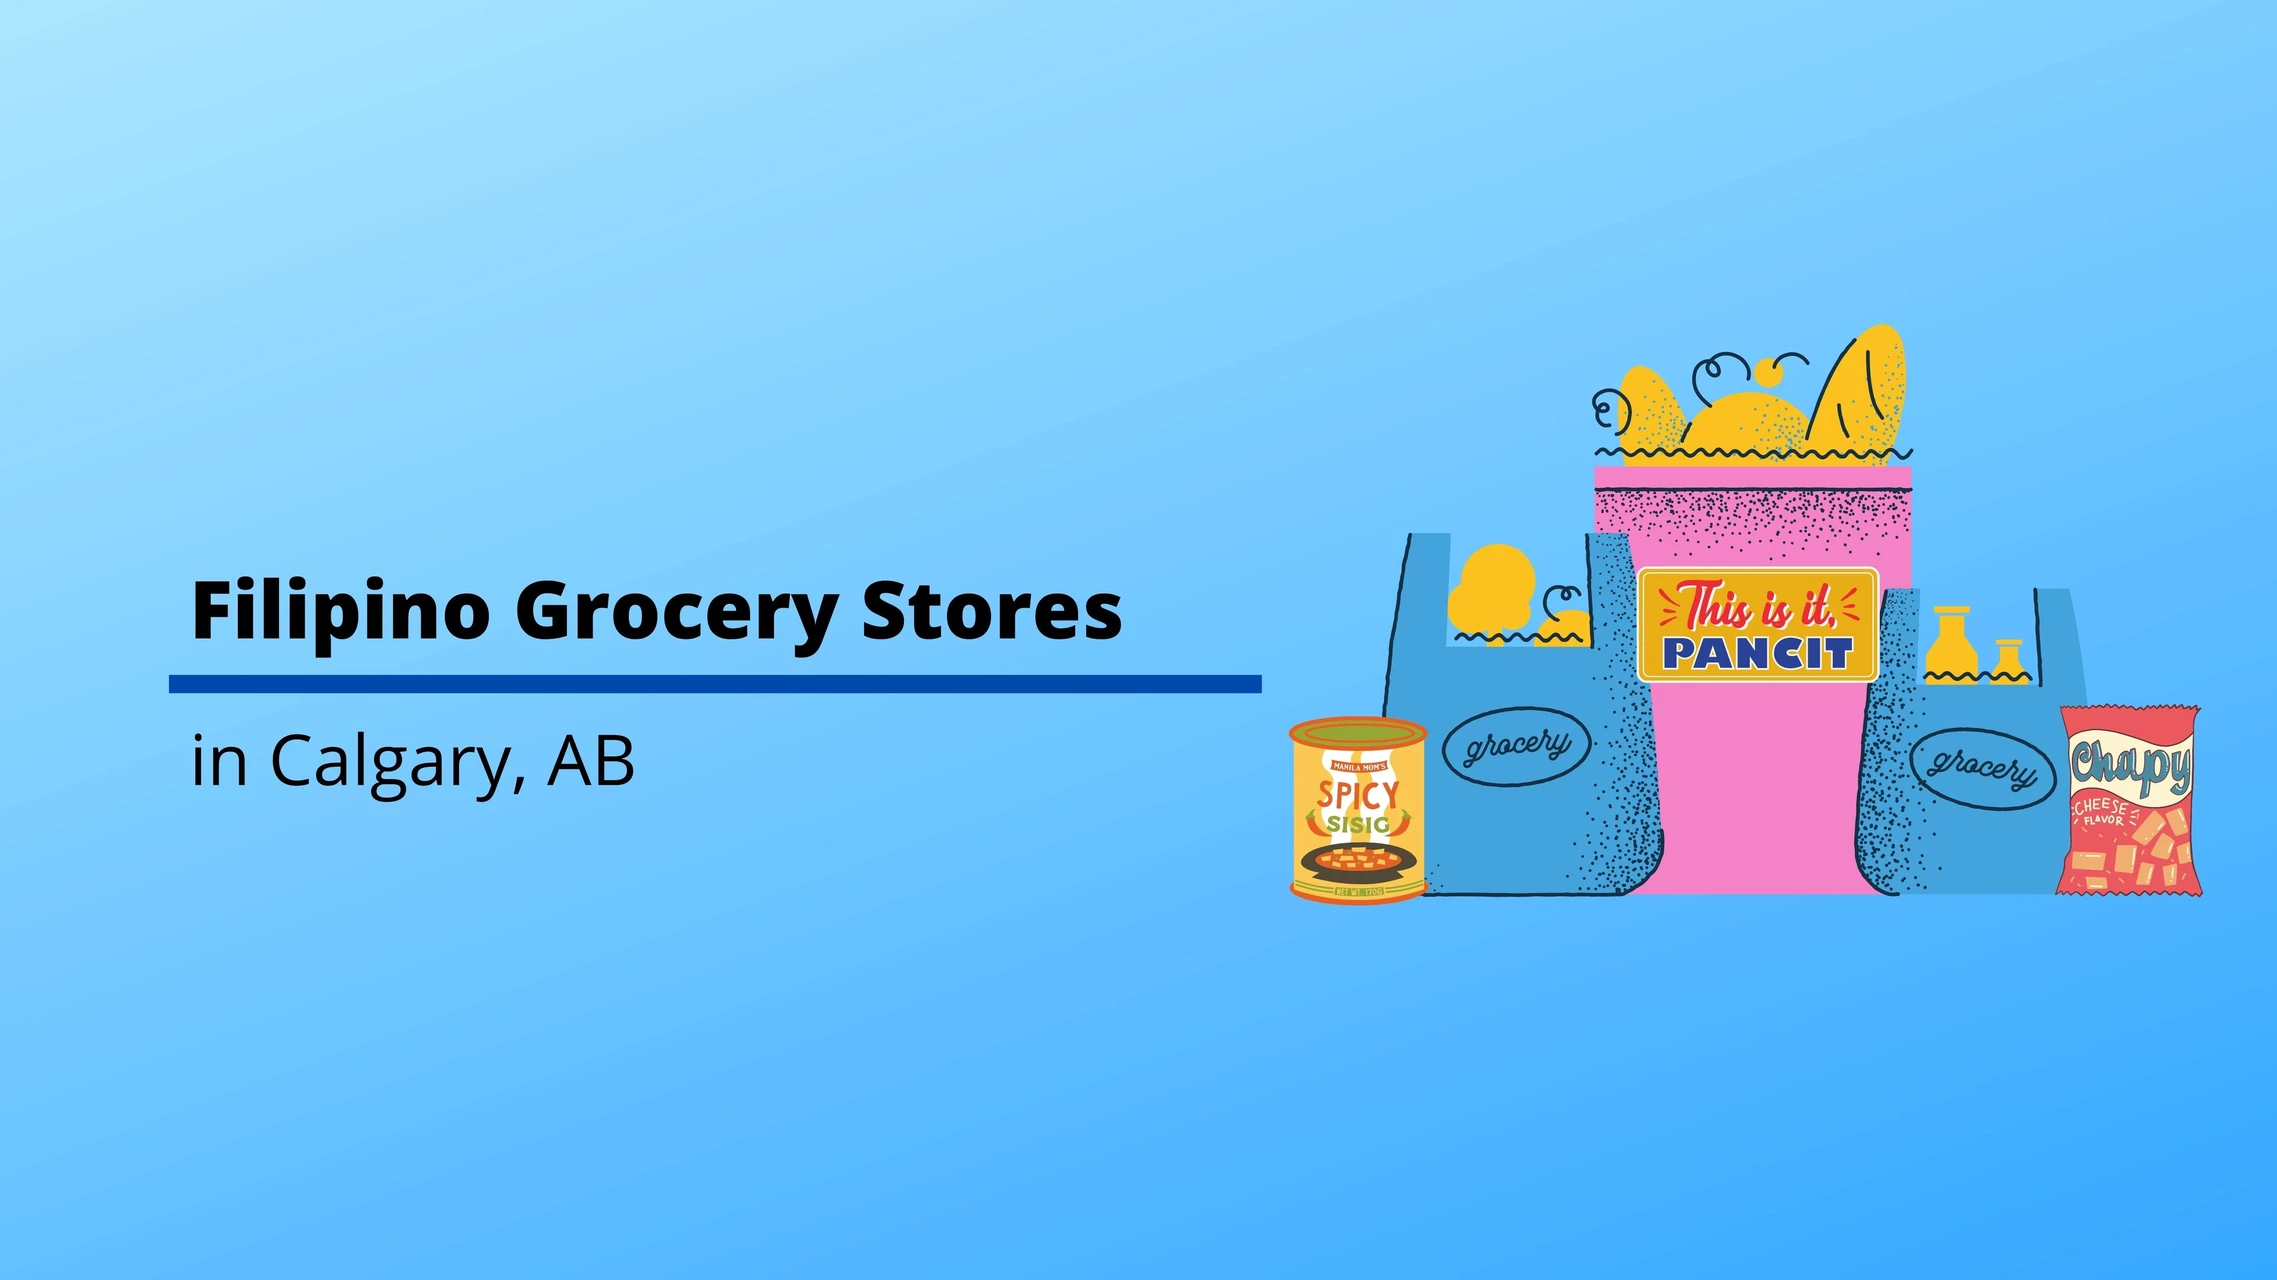 Filipino Grocery Stores in Calgary